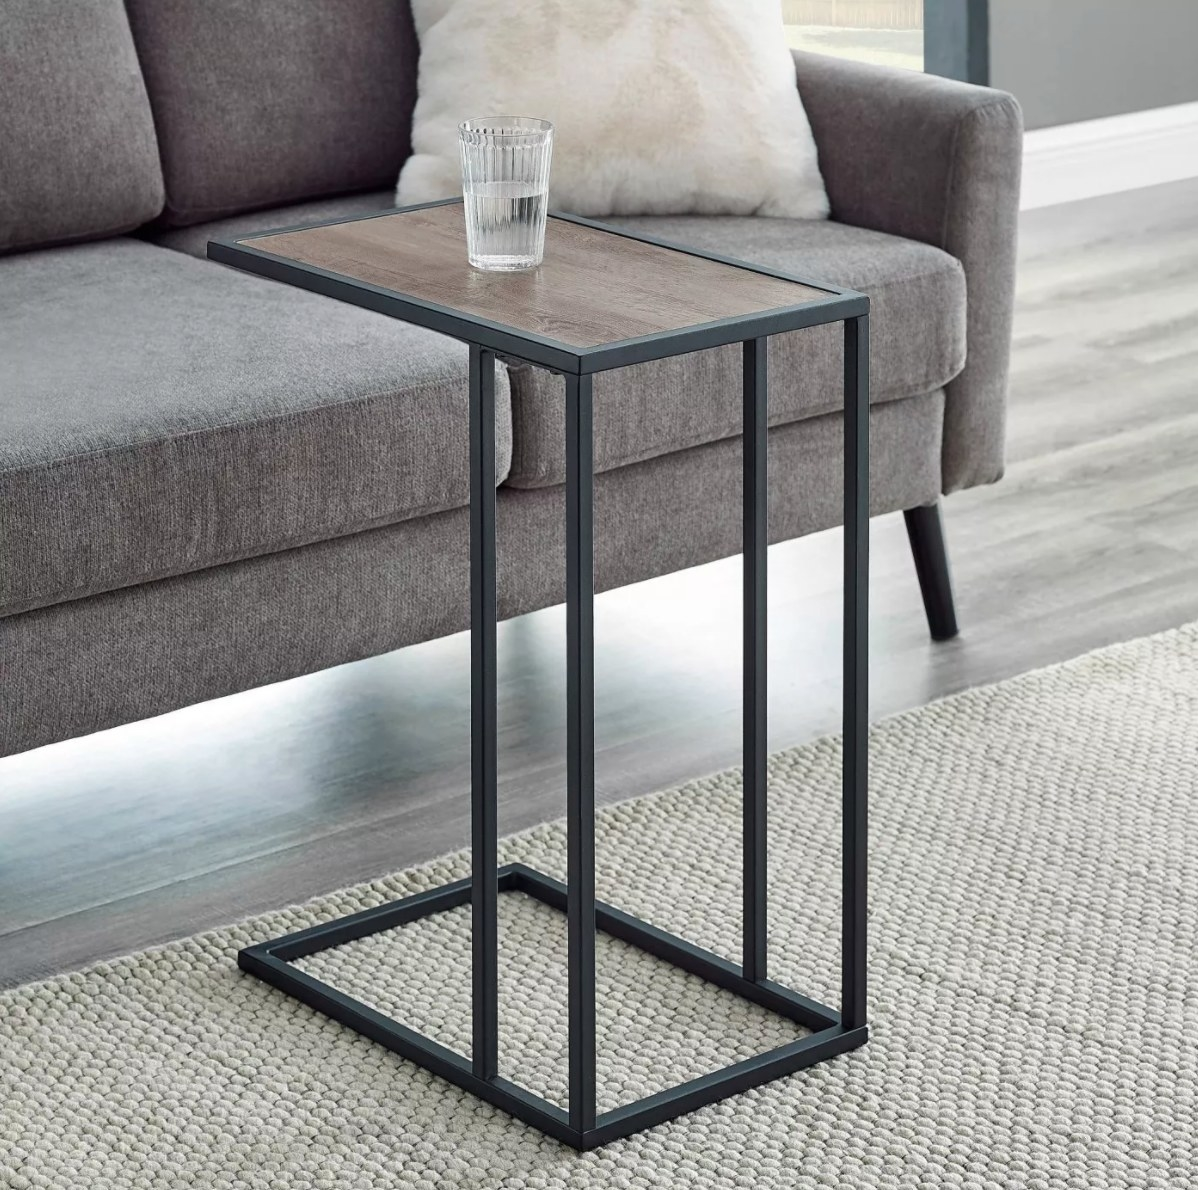 The side table in gray wash